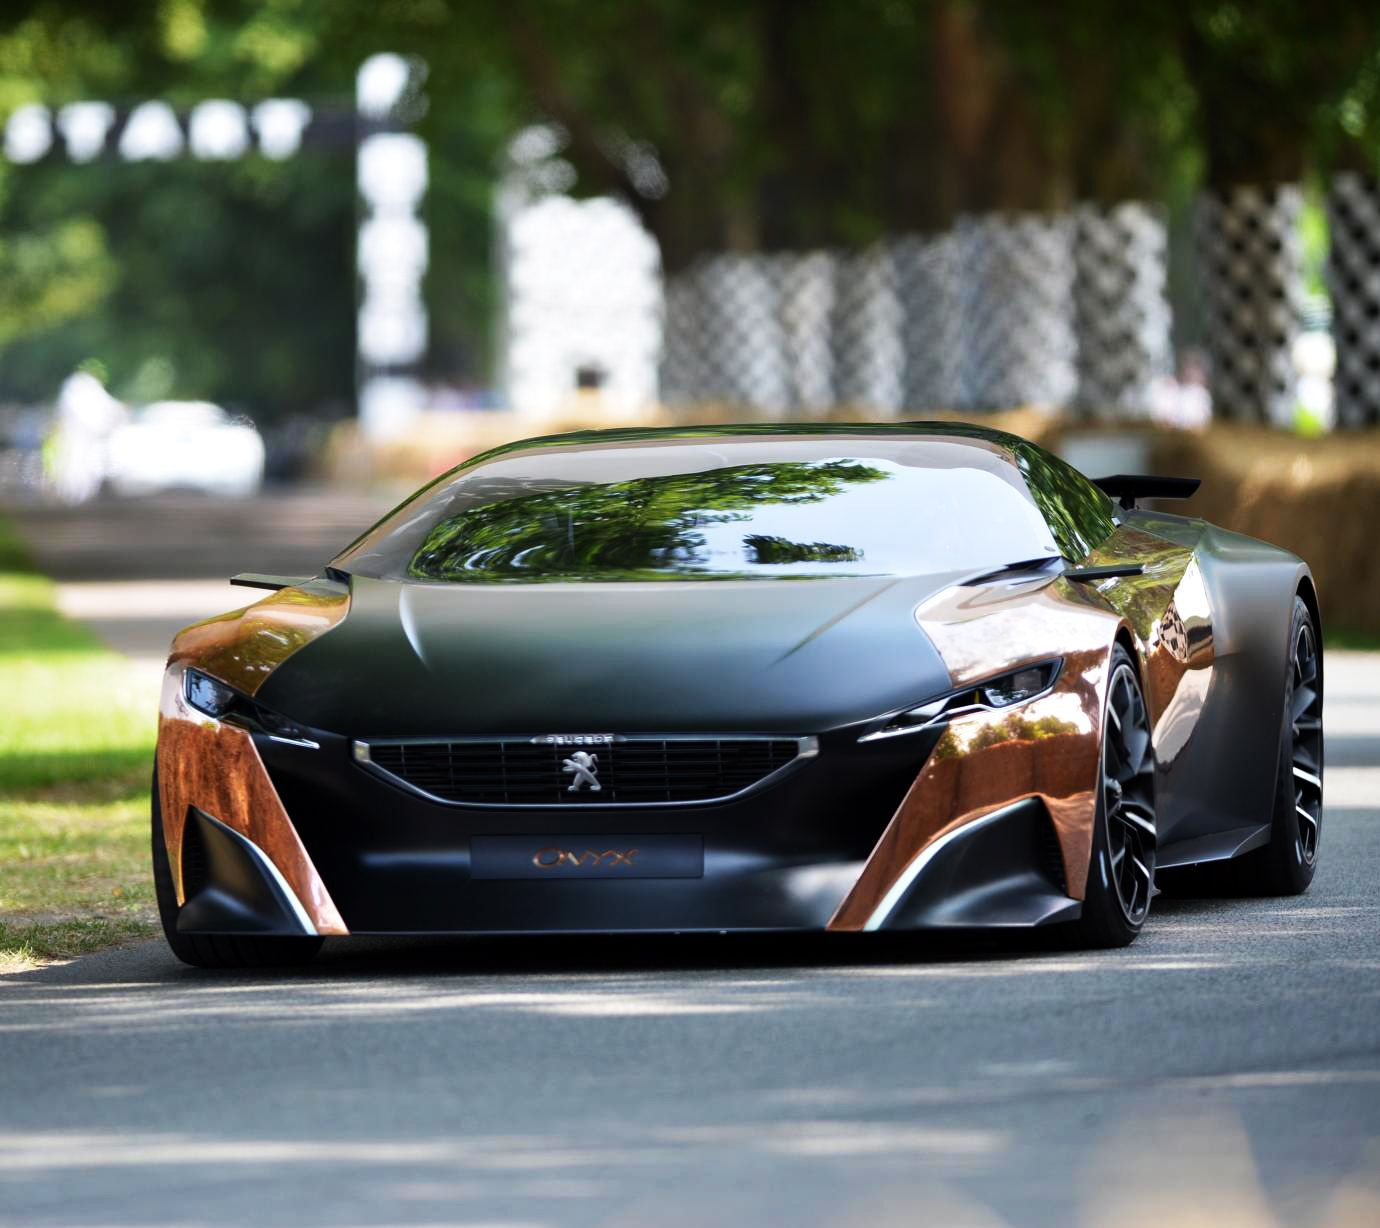 peugeot 39 s new fractal concept is like sexy sexy math peugeot pinterest cars peugeot and. Black Bedroom Furniture Sets. Home Design Ideas